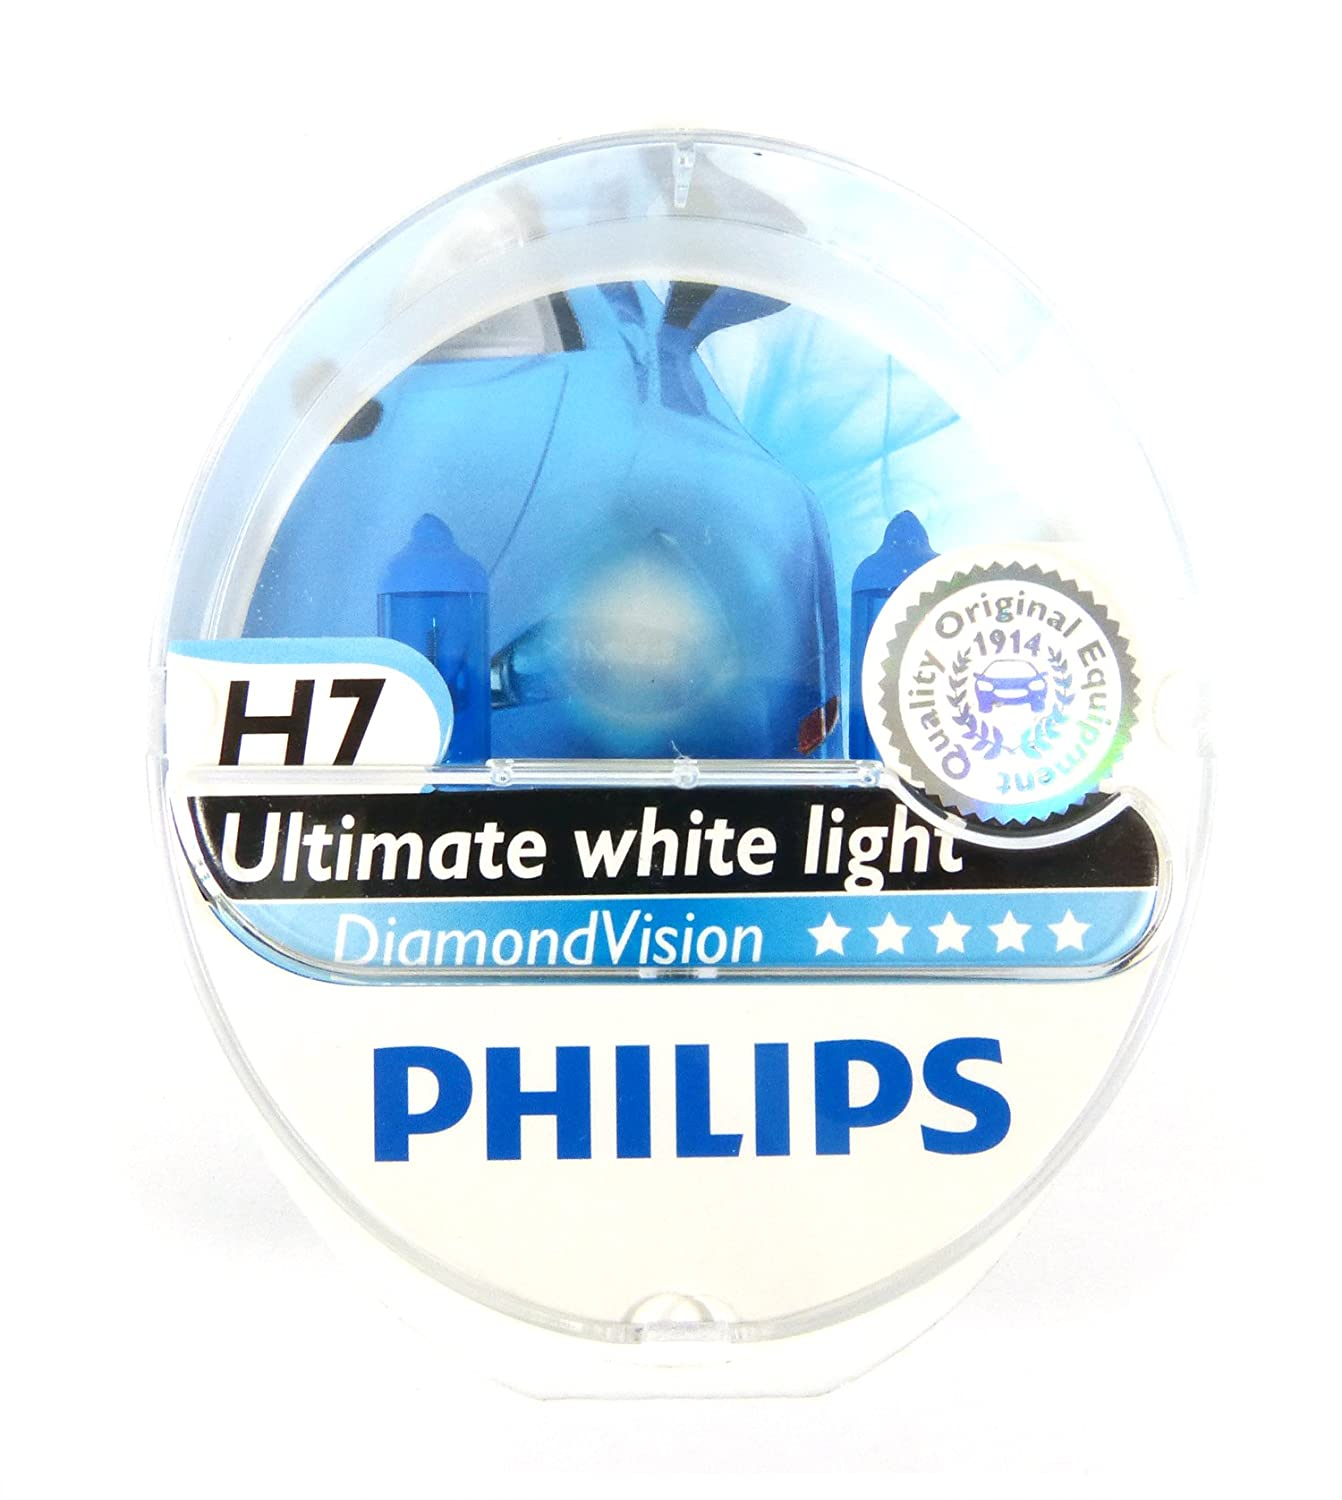 Philips - Diamond Vision H7 Halogen HID Bulbs (Pair) at Sears.com